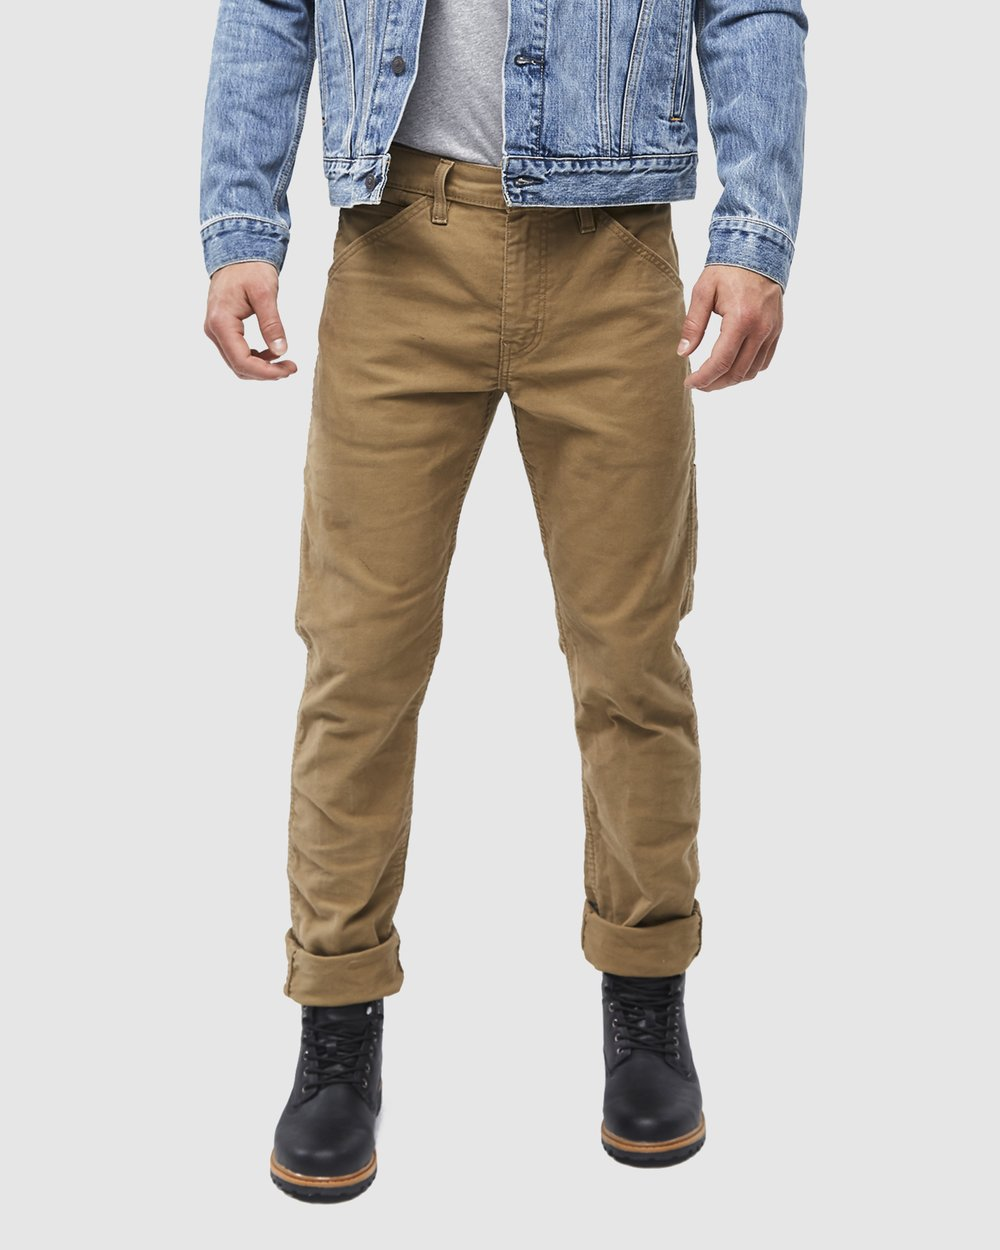 52e7e9605 Workwear 511 Slim Fit Utility by Levi s Online